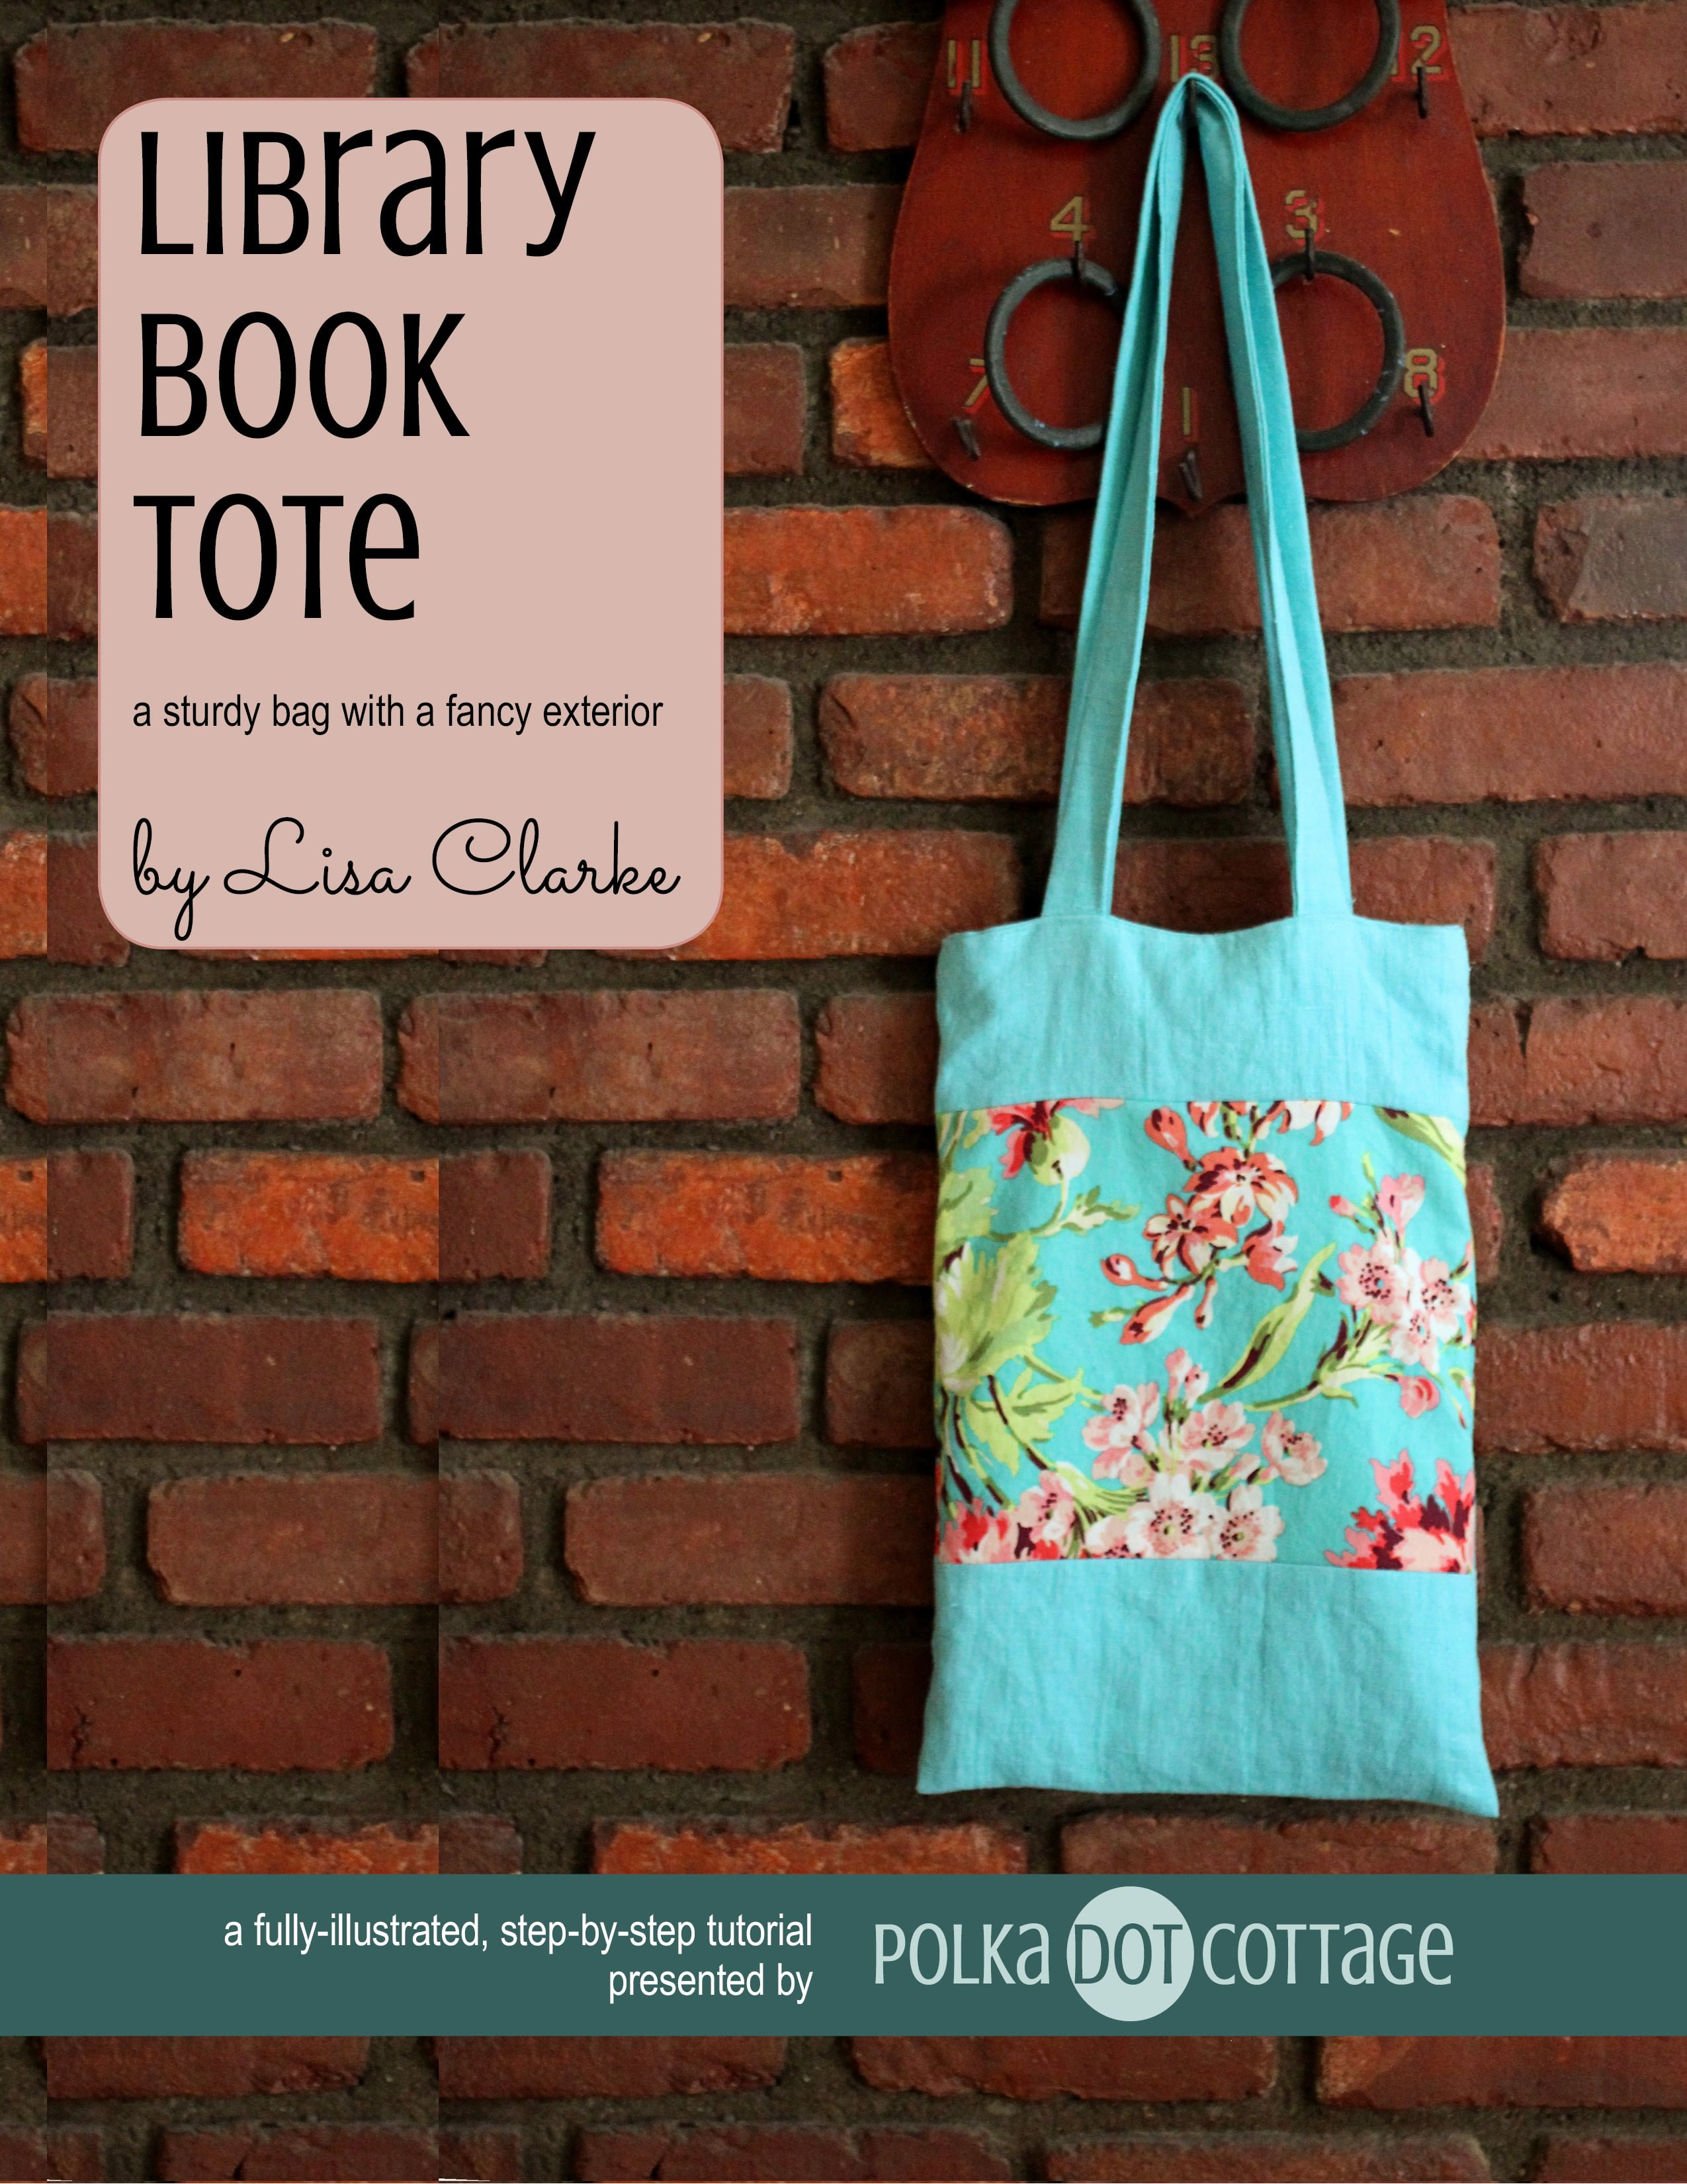 Library book tote polka dot cottage library book tote fandeluxe Gallery